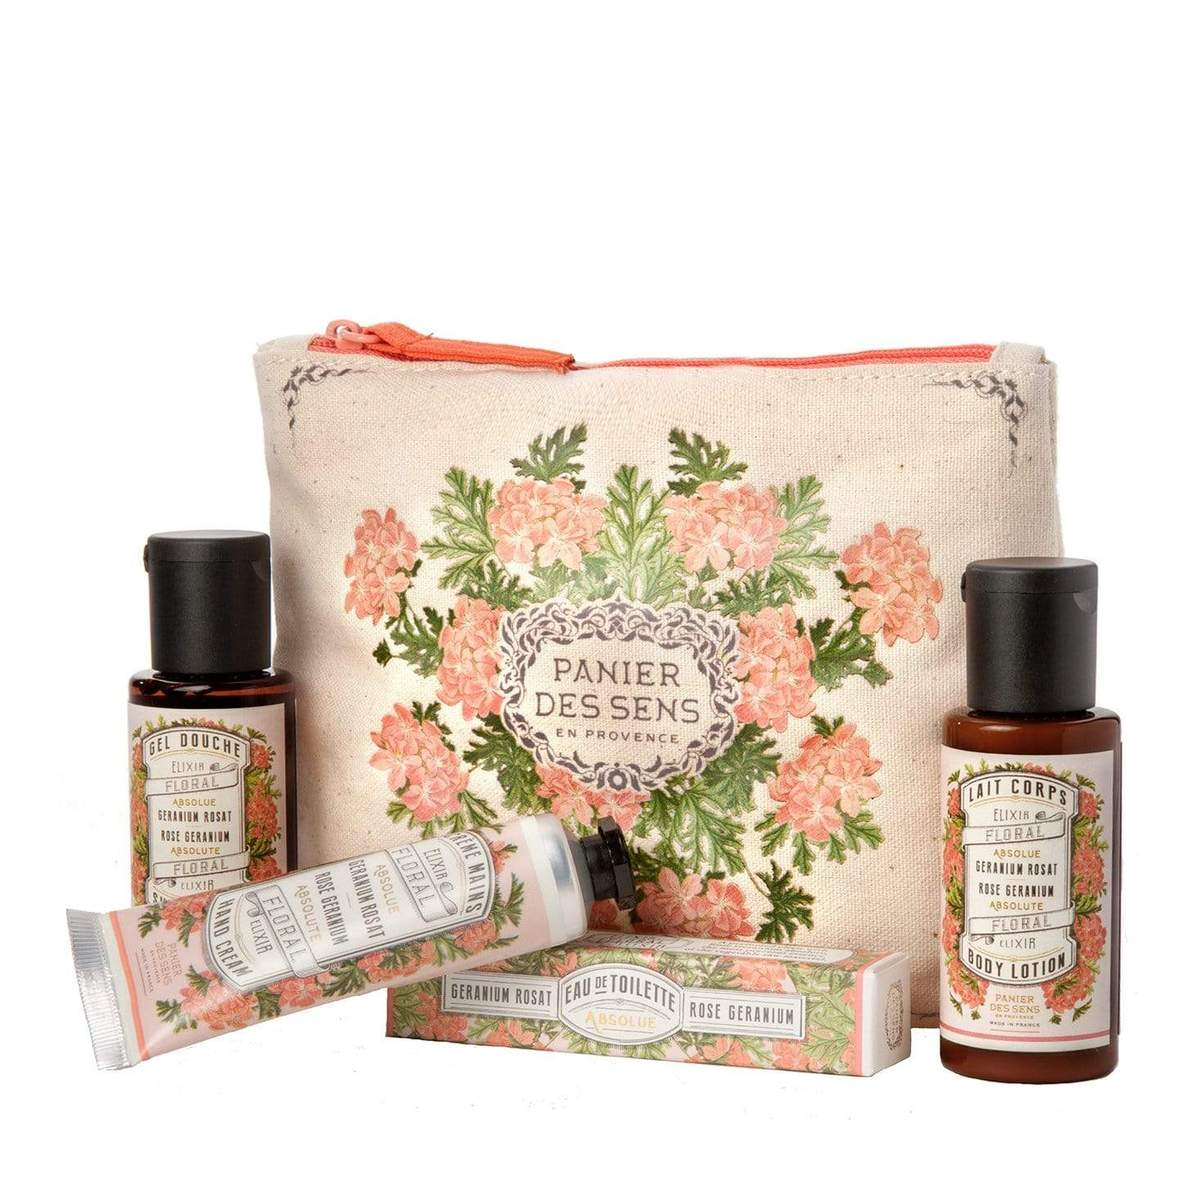 ROSE GERANIUM TRAVEL SET